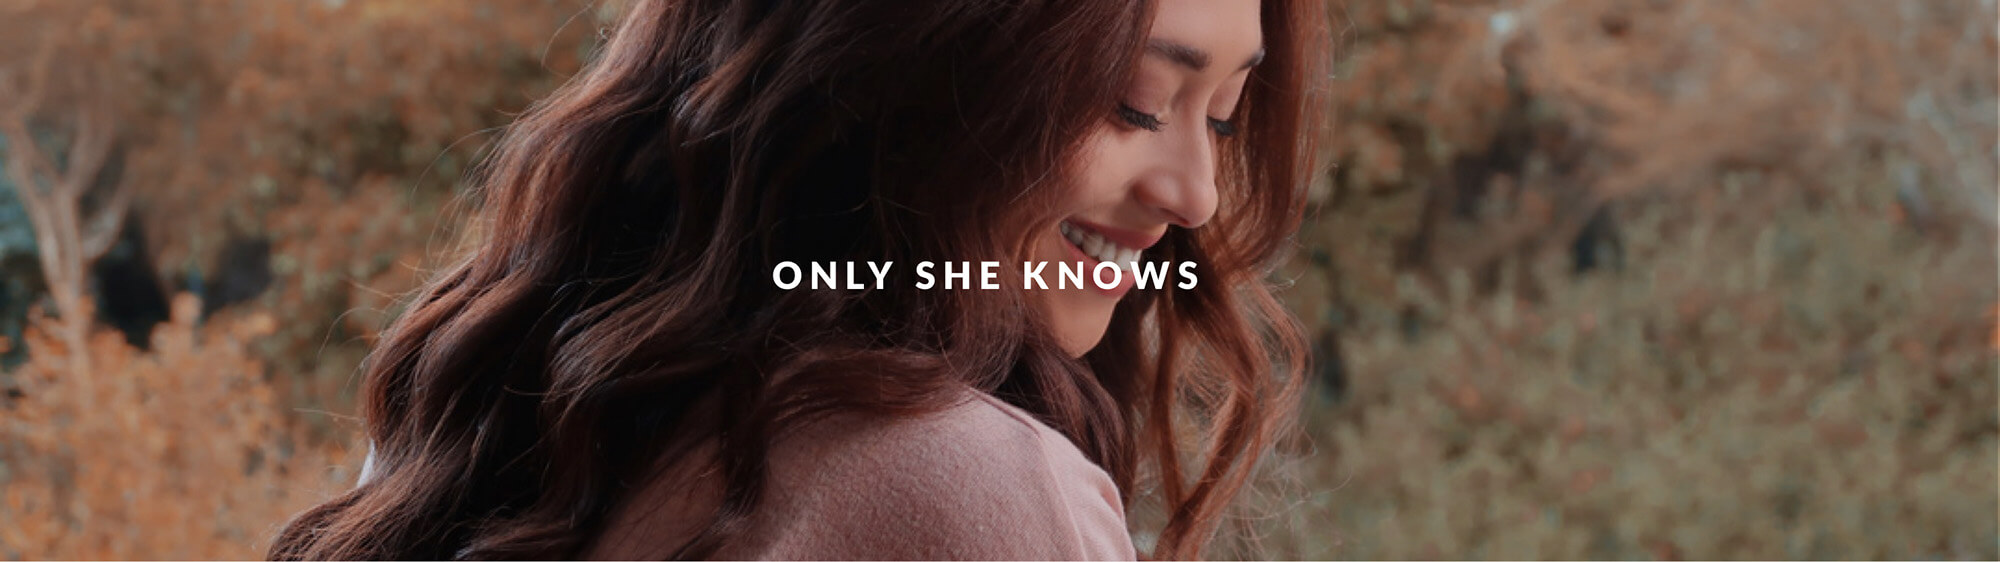 Only She Knows